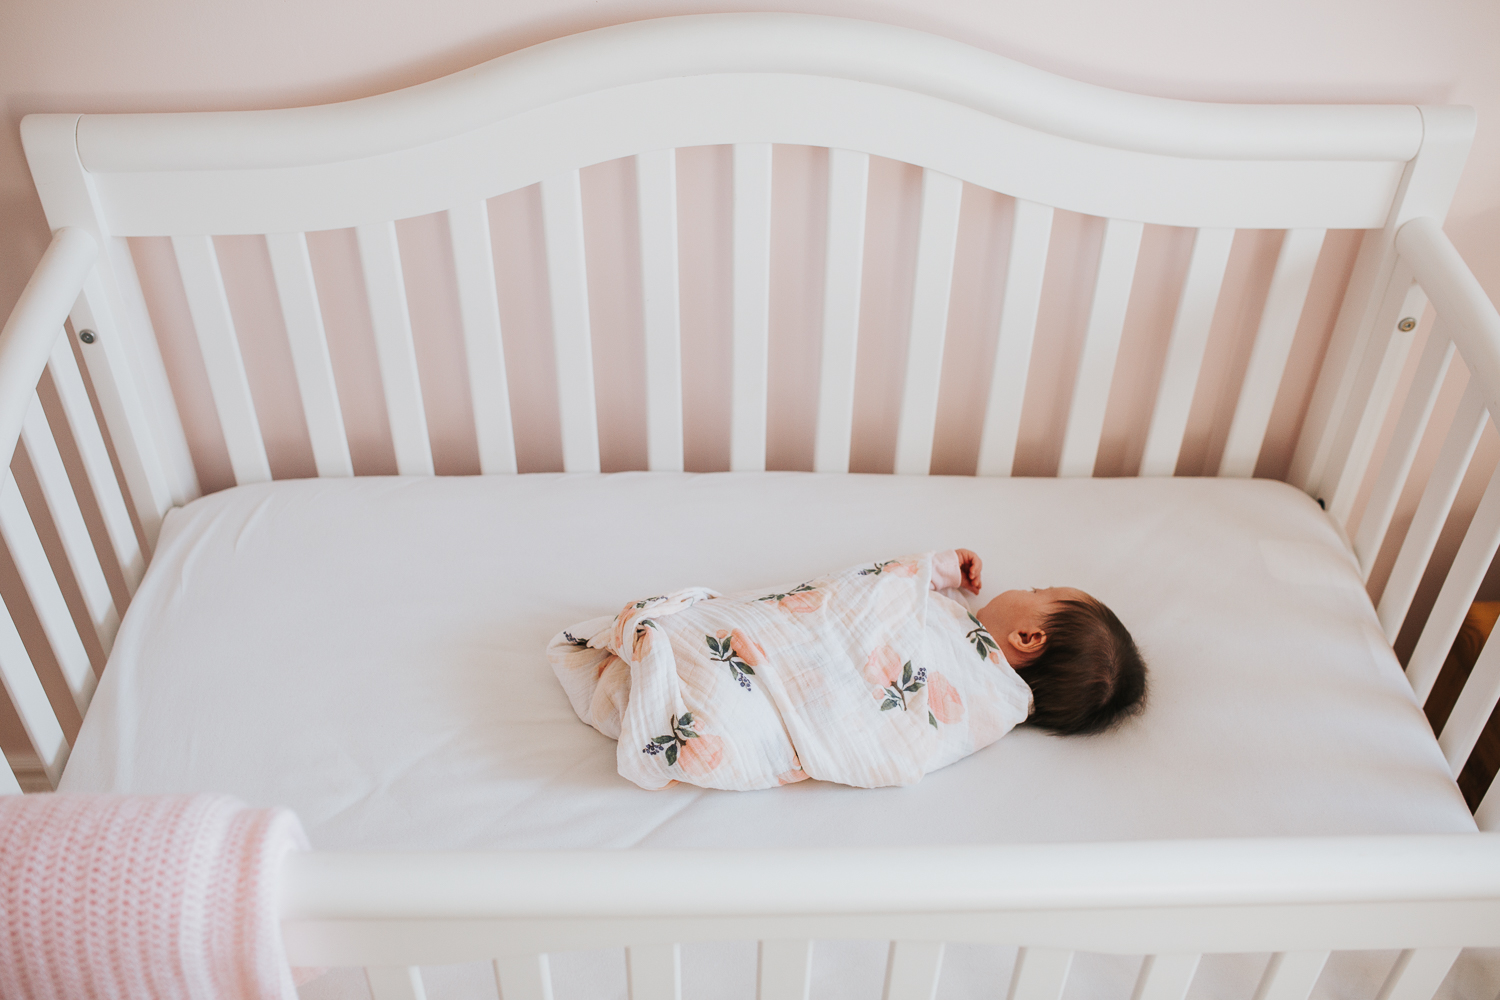 1 month old swaddled baby girl sleeping in crib in pink nursery - Newmarket newborn photography